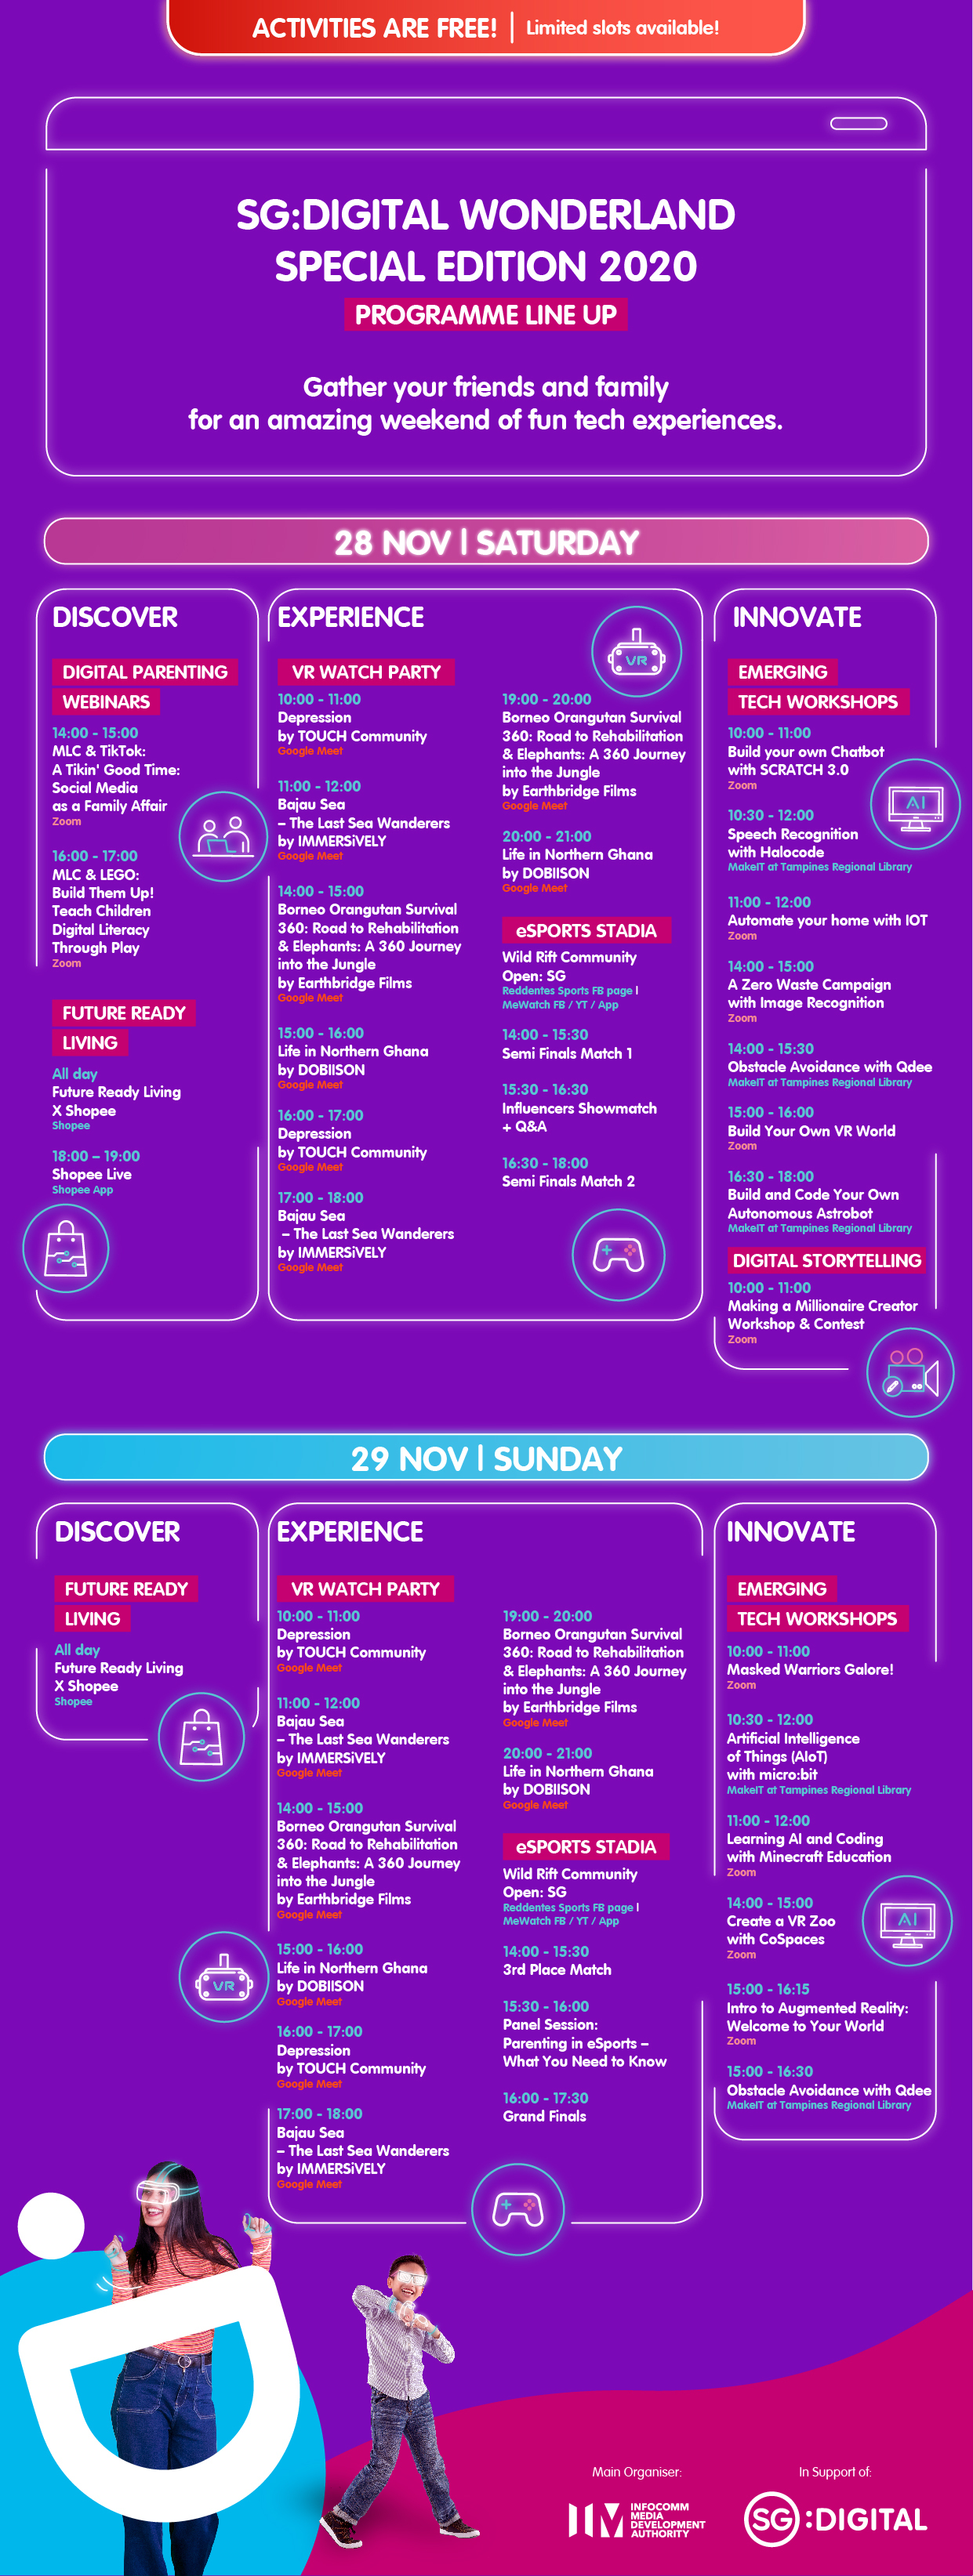 Programme Sheet - Singapore Digital Wonderland 2020